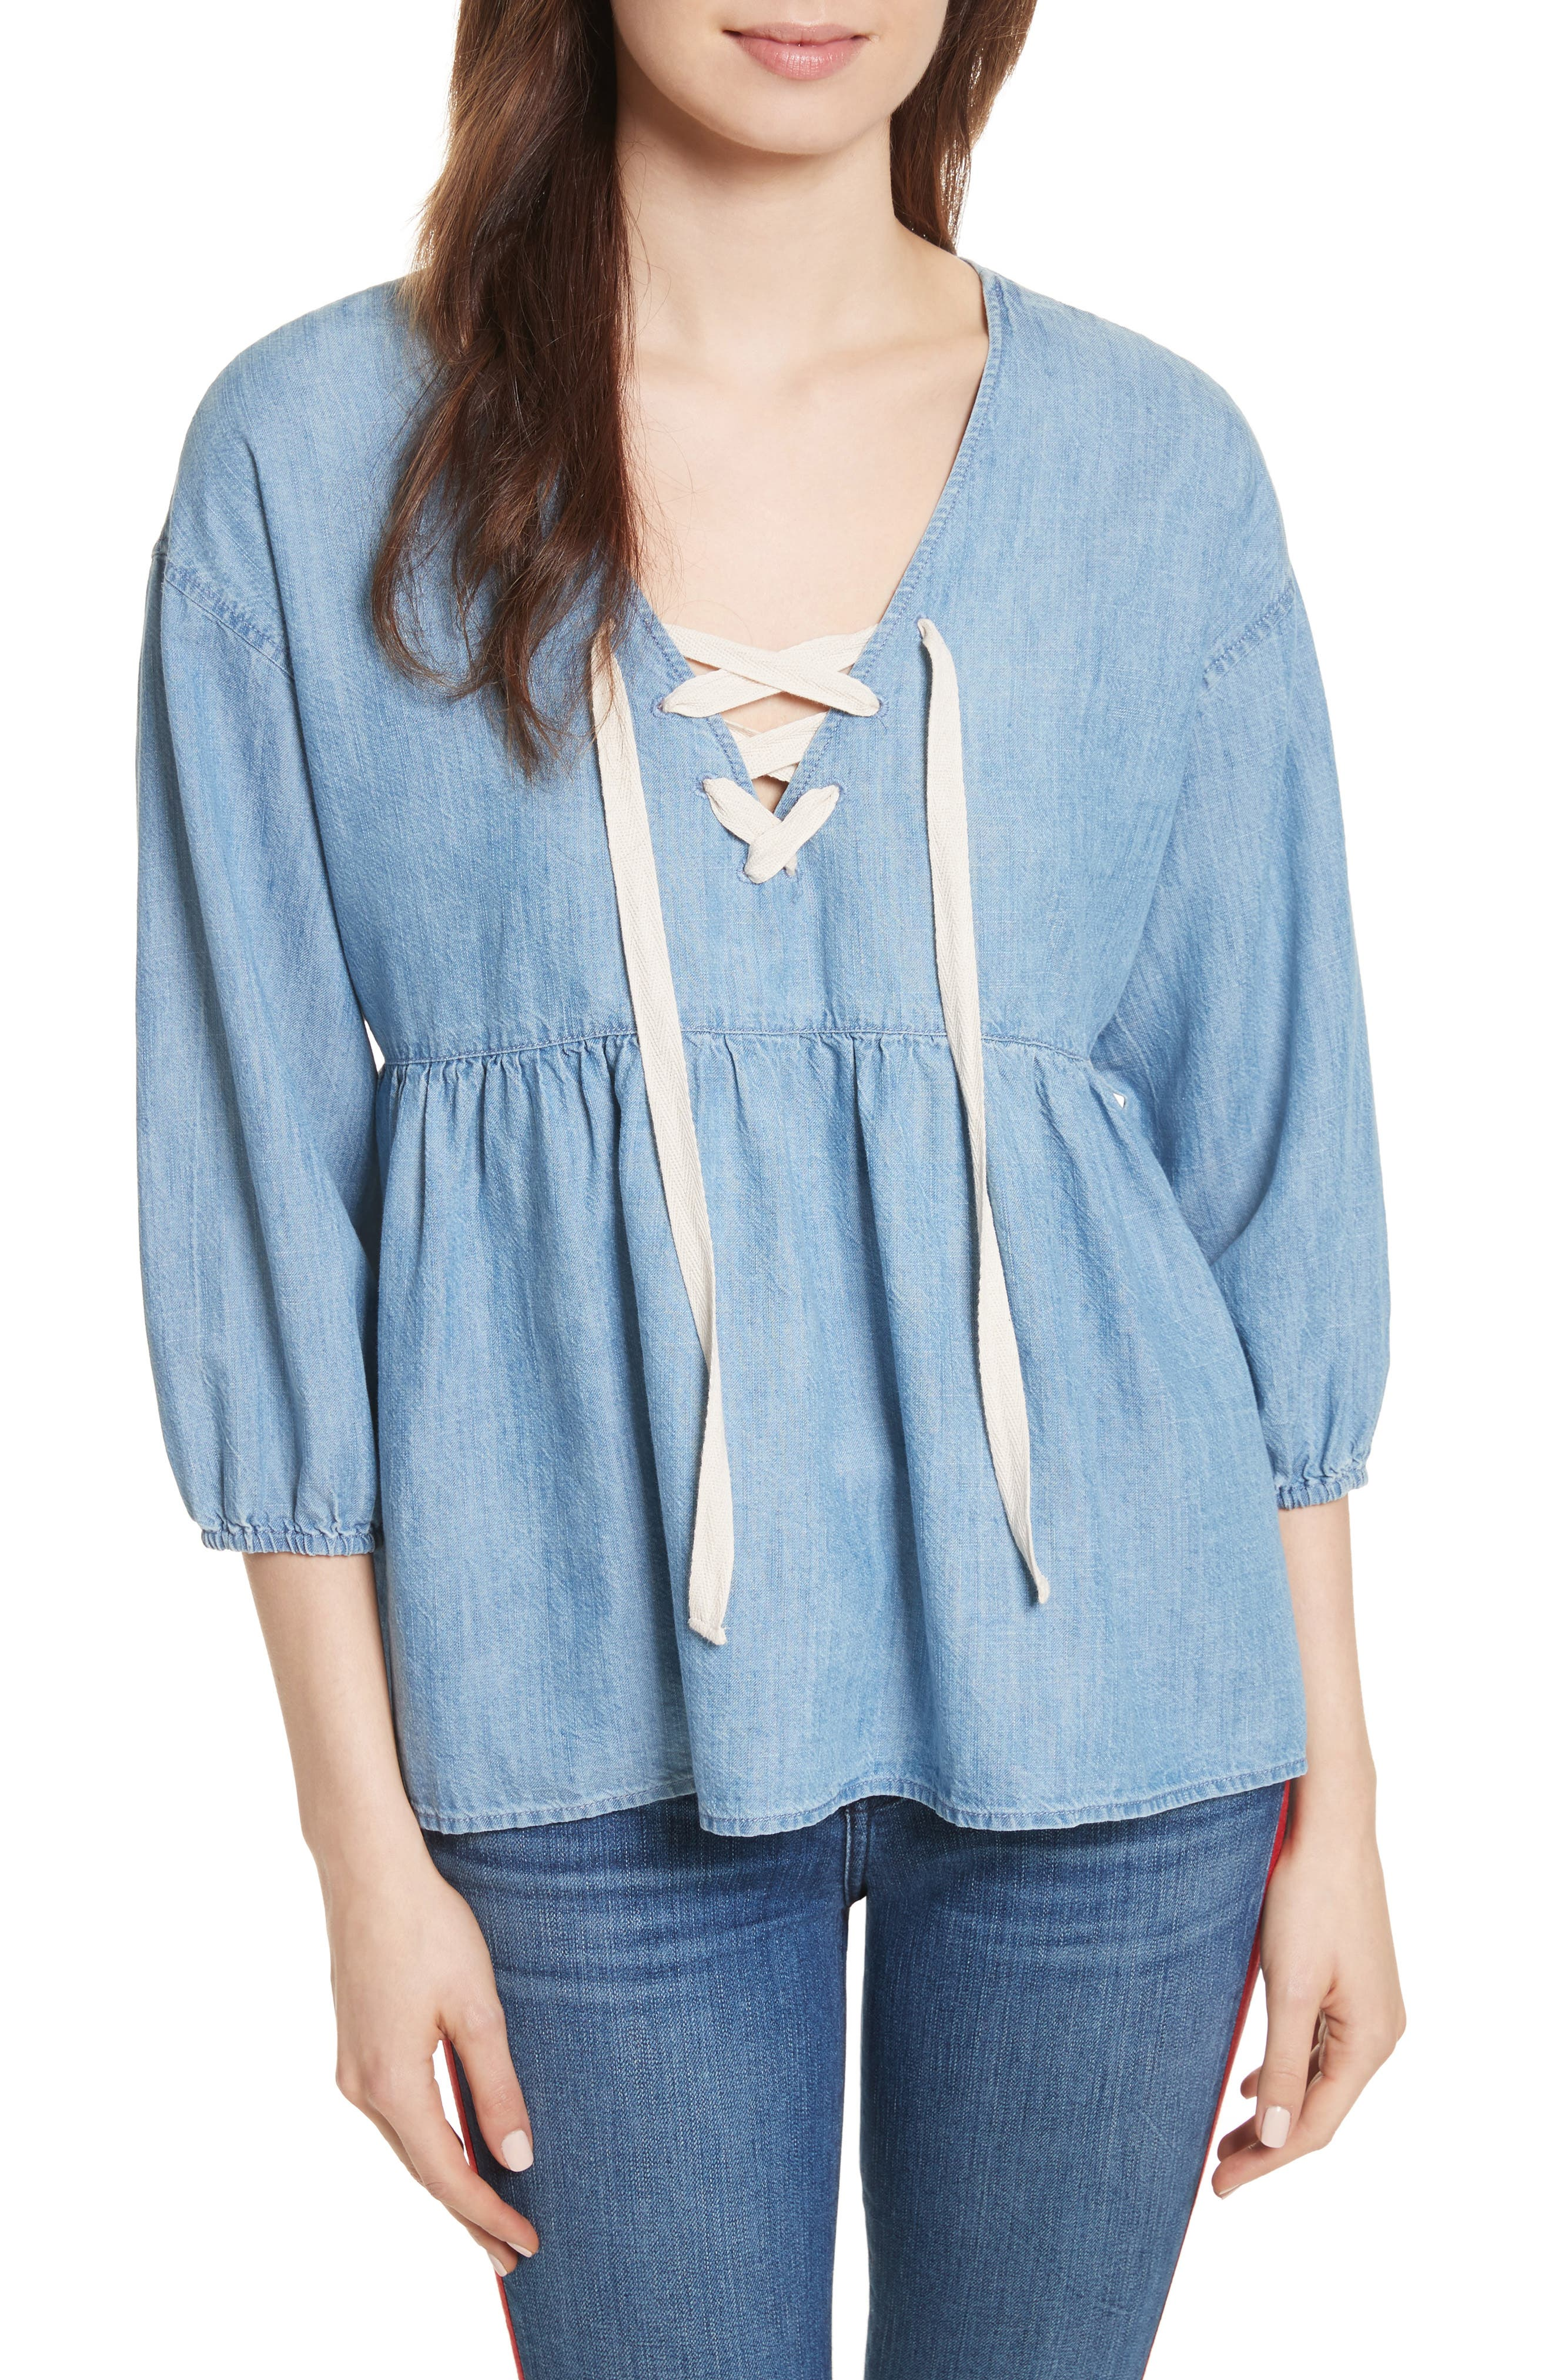 Alternate Image 1 Selected - Joie Bealette Lace-Up Chambray Top